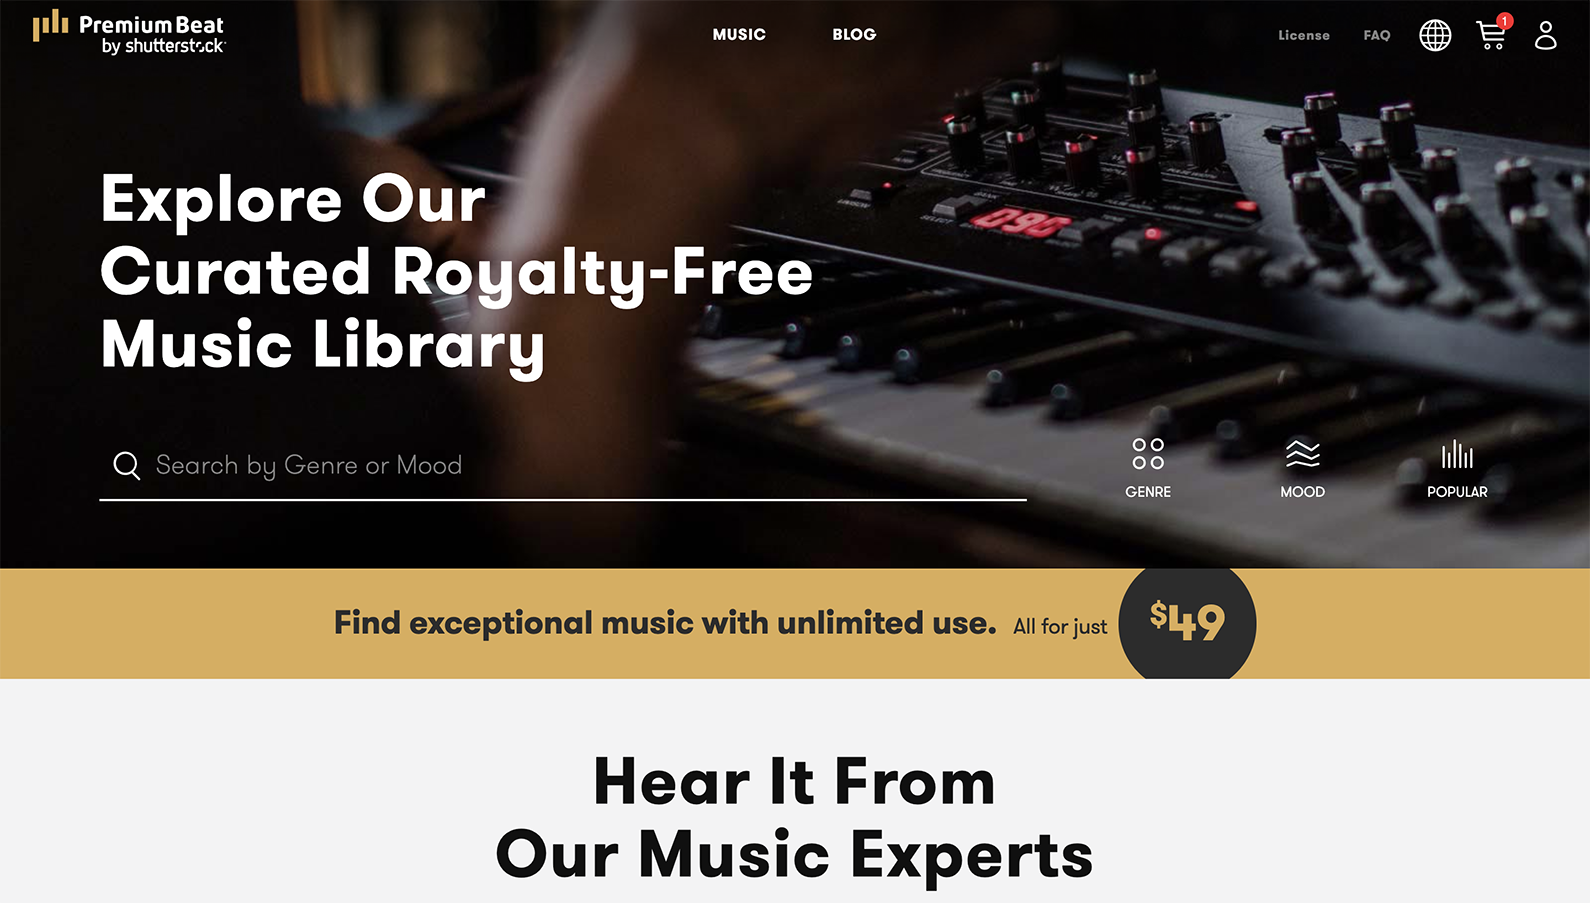 Screenshot of Premium Beat, a tool to source free music for videos